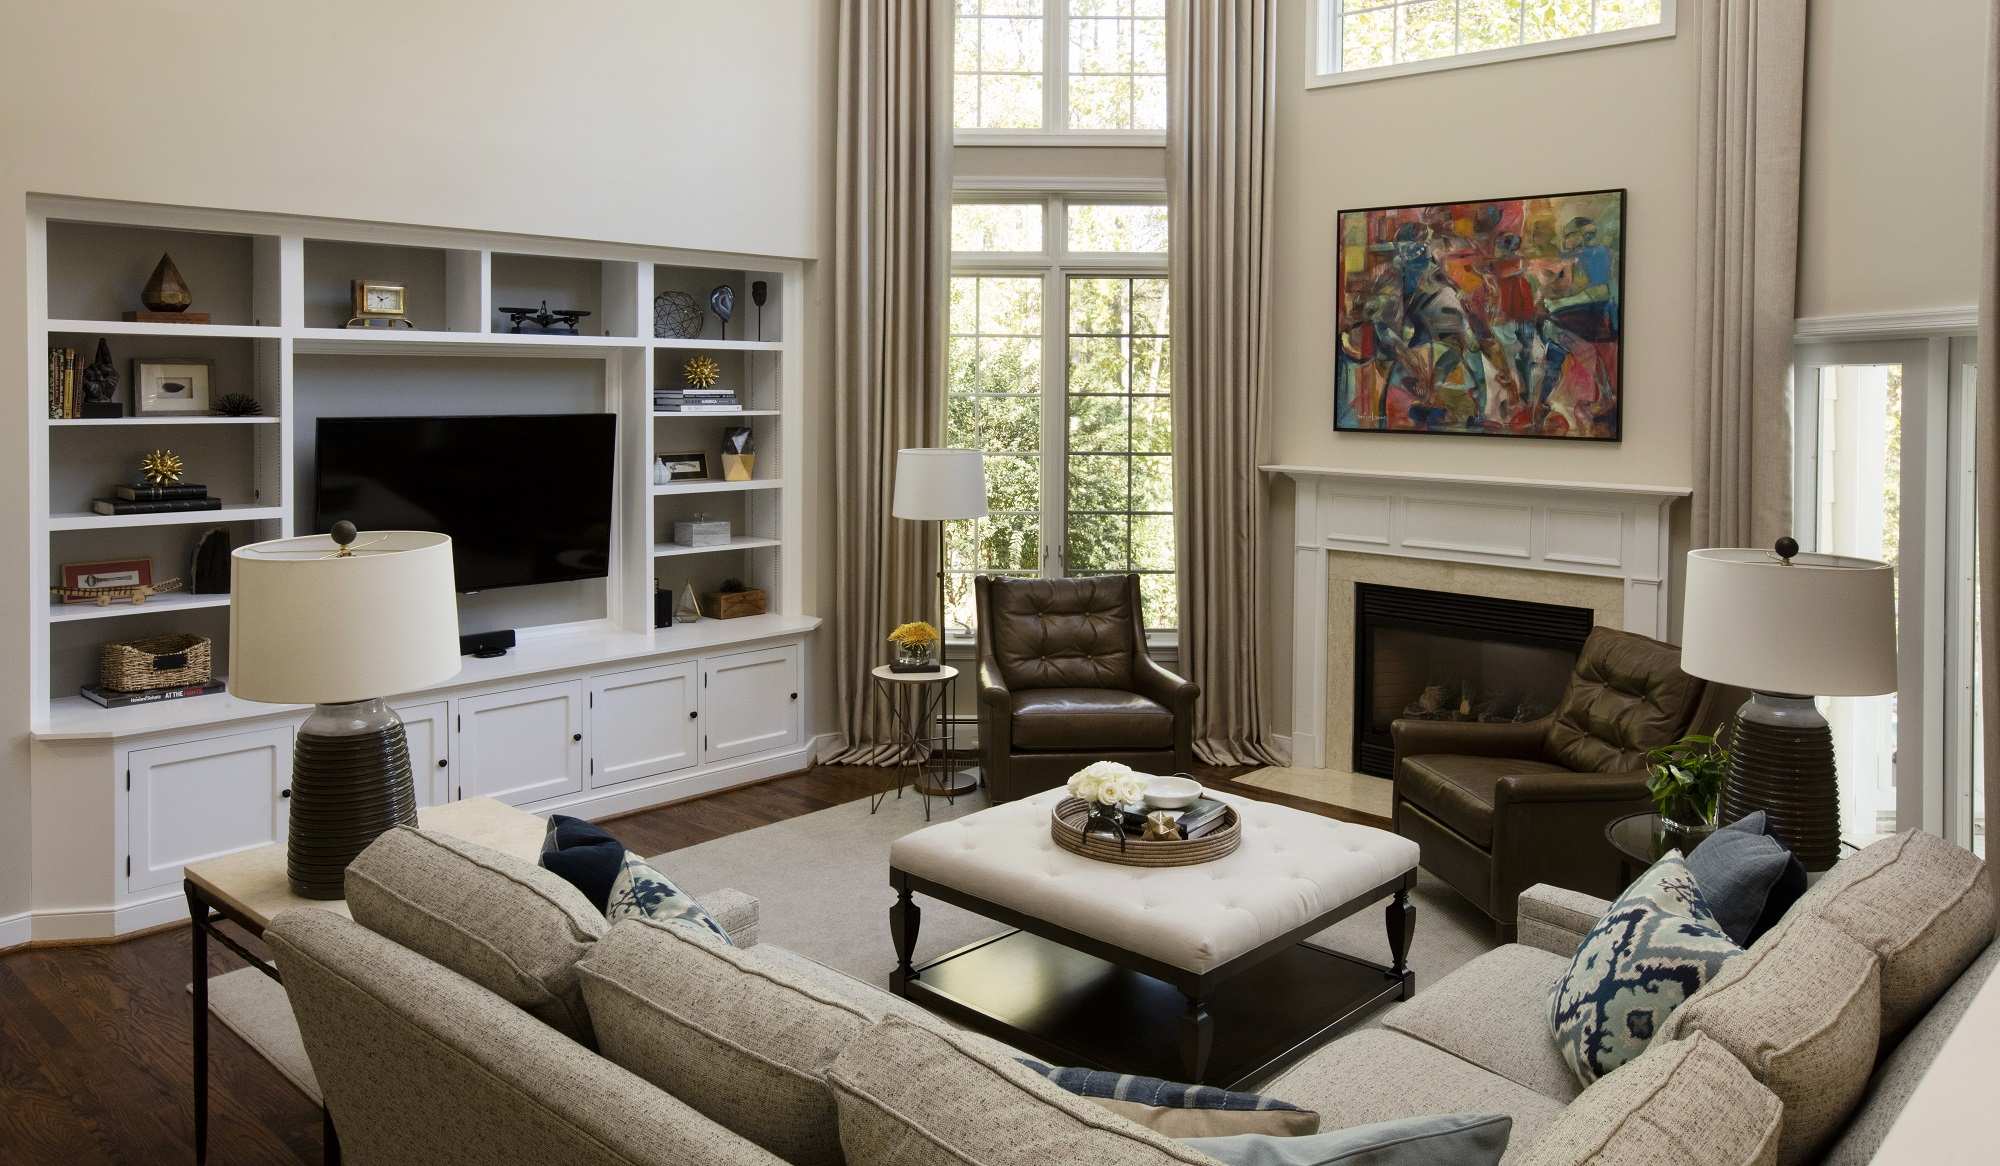 Trish-Albano-Interior-Design-Maryland-Living-Room